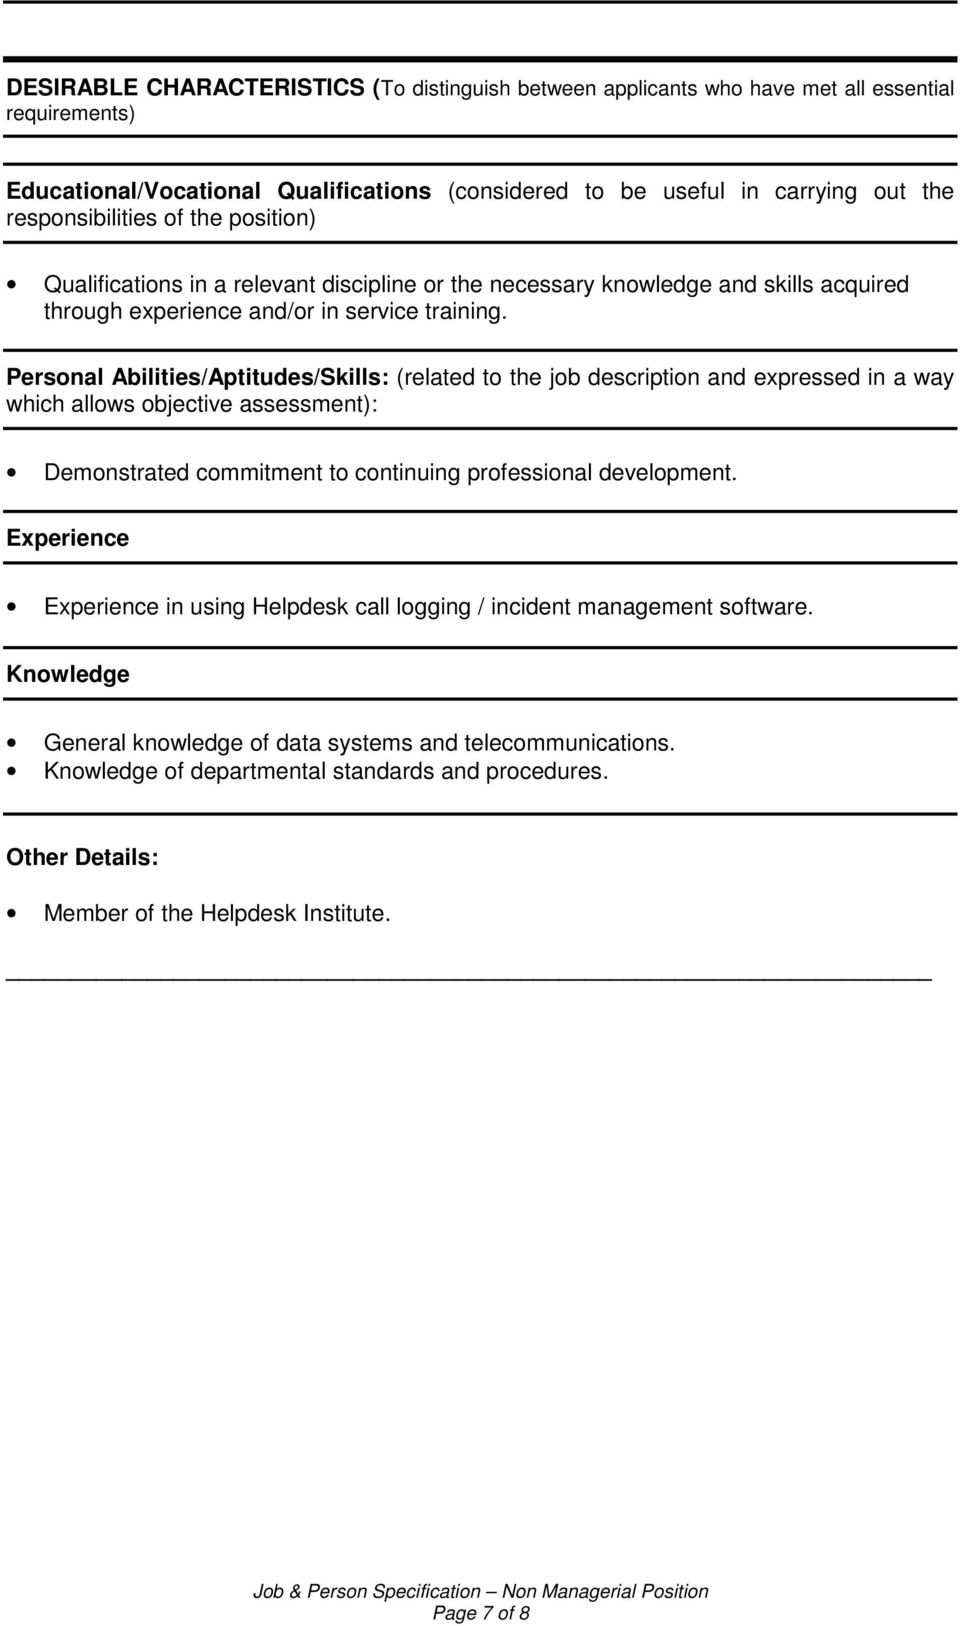 Personal Abilities/Aptitudes/Skills: (related to the job description and expressed in a way which allows objective assessment): Demonstrated commitment to continuing professional development.